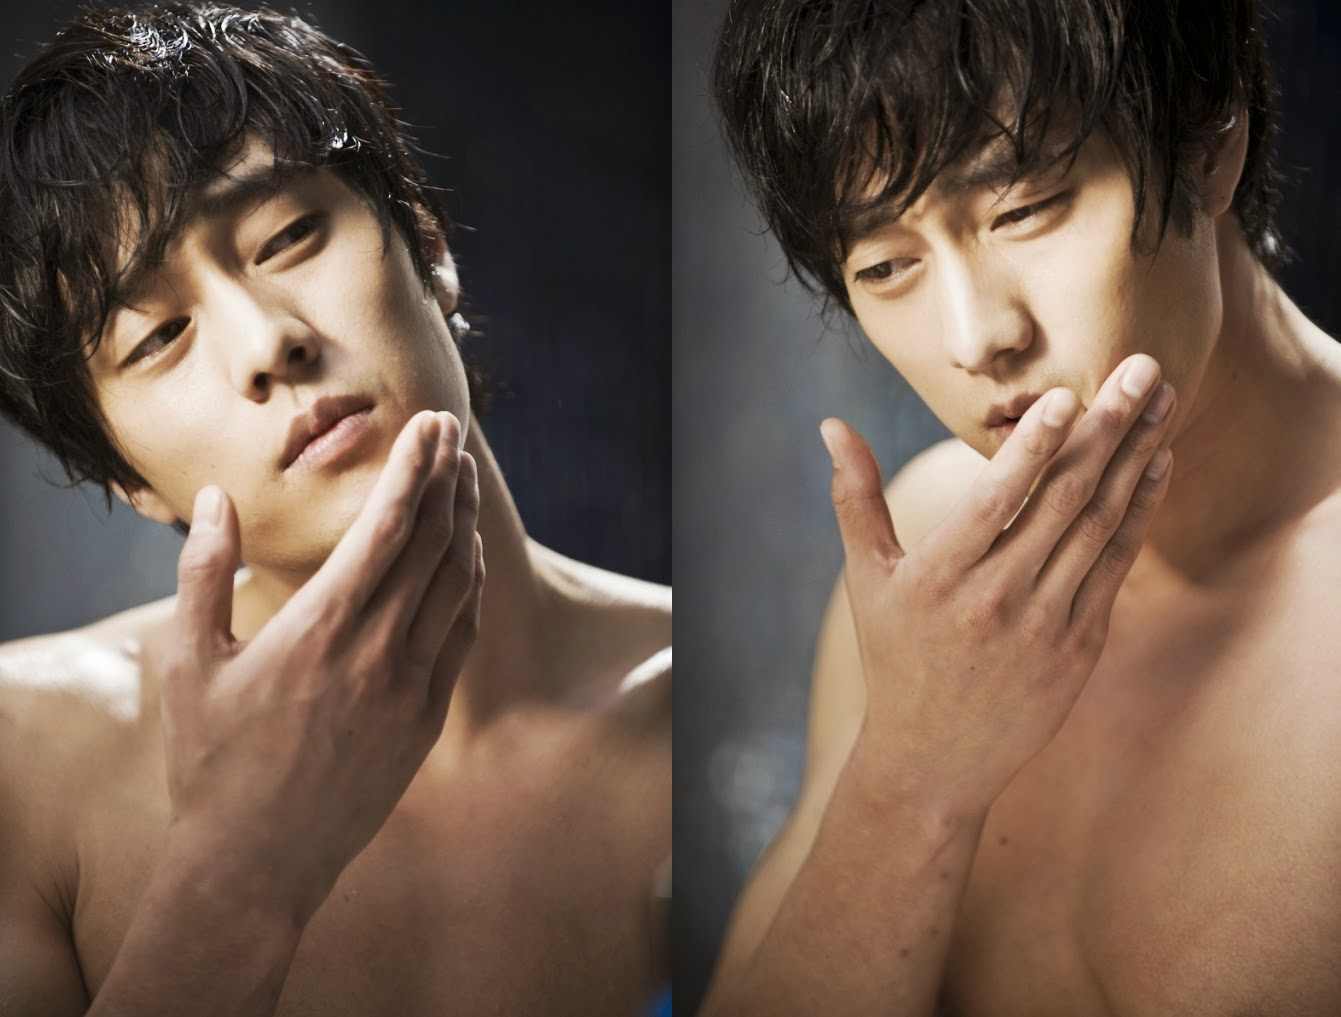 Sexy So Ji Sub to open this post. Stop touching your monitor, readers.